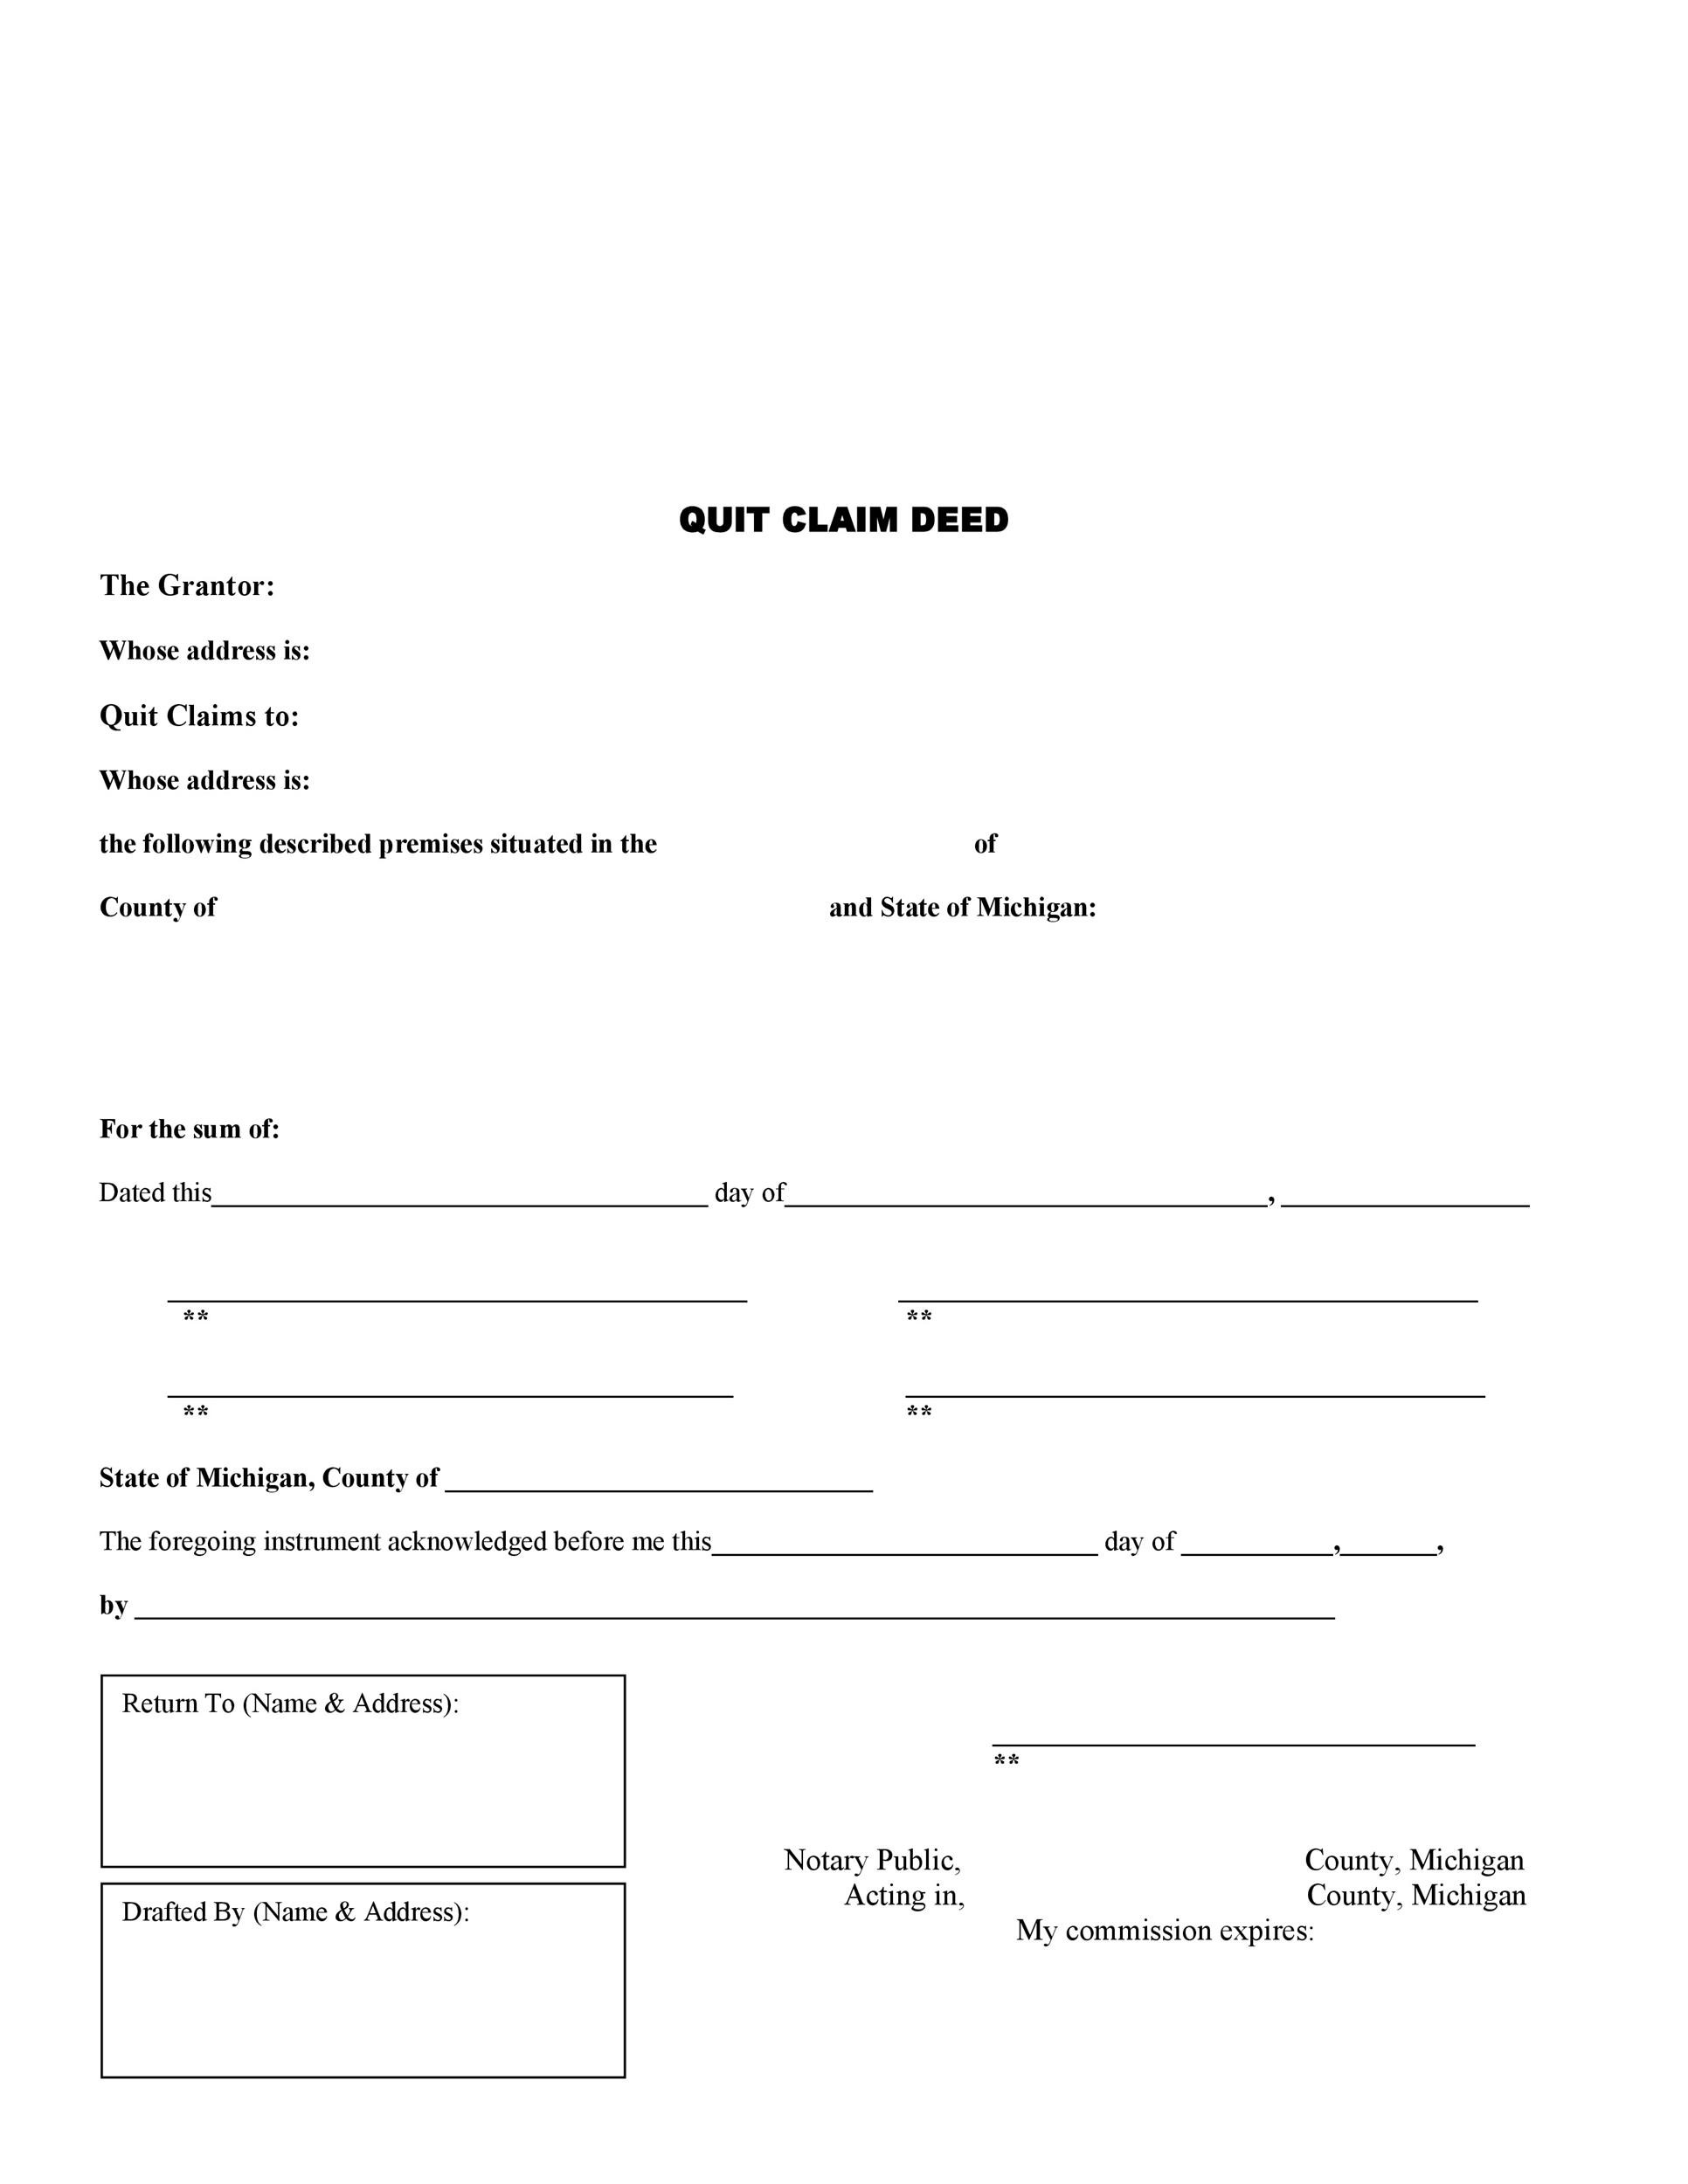 Free Quit Claim Deed Template 33